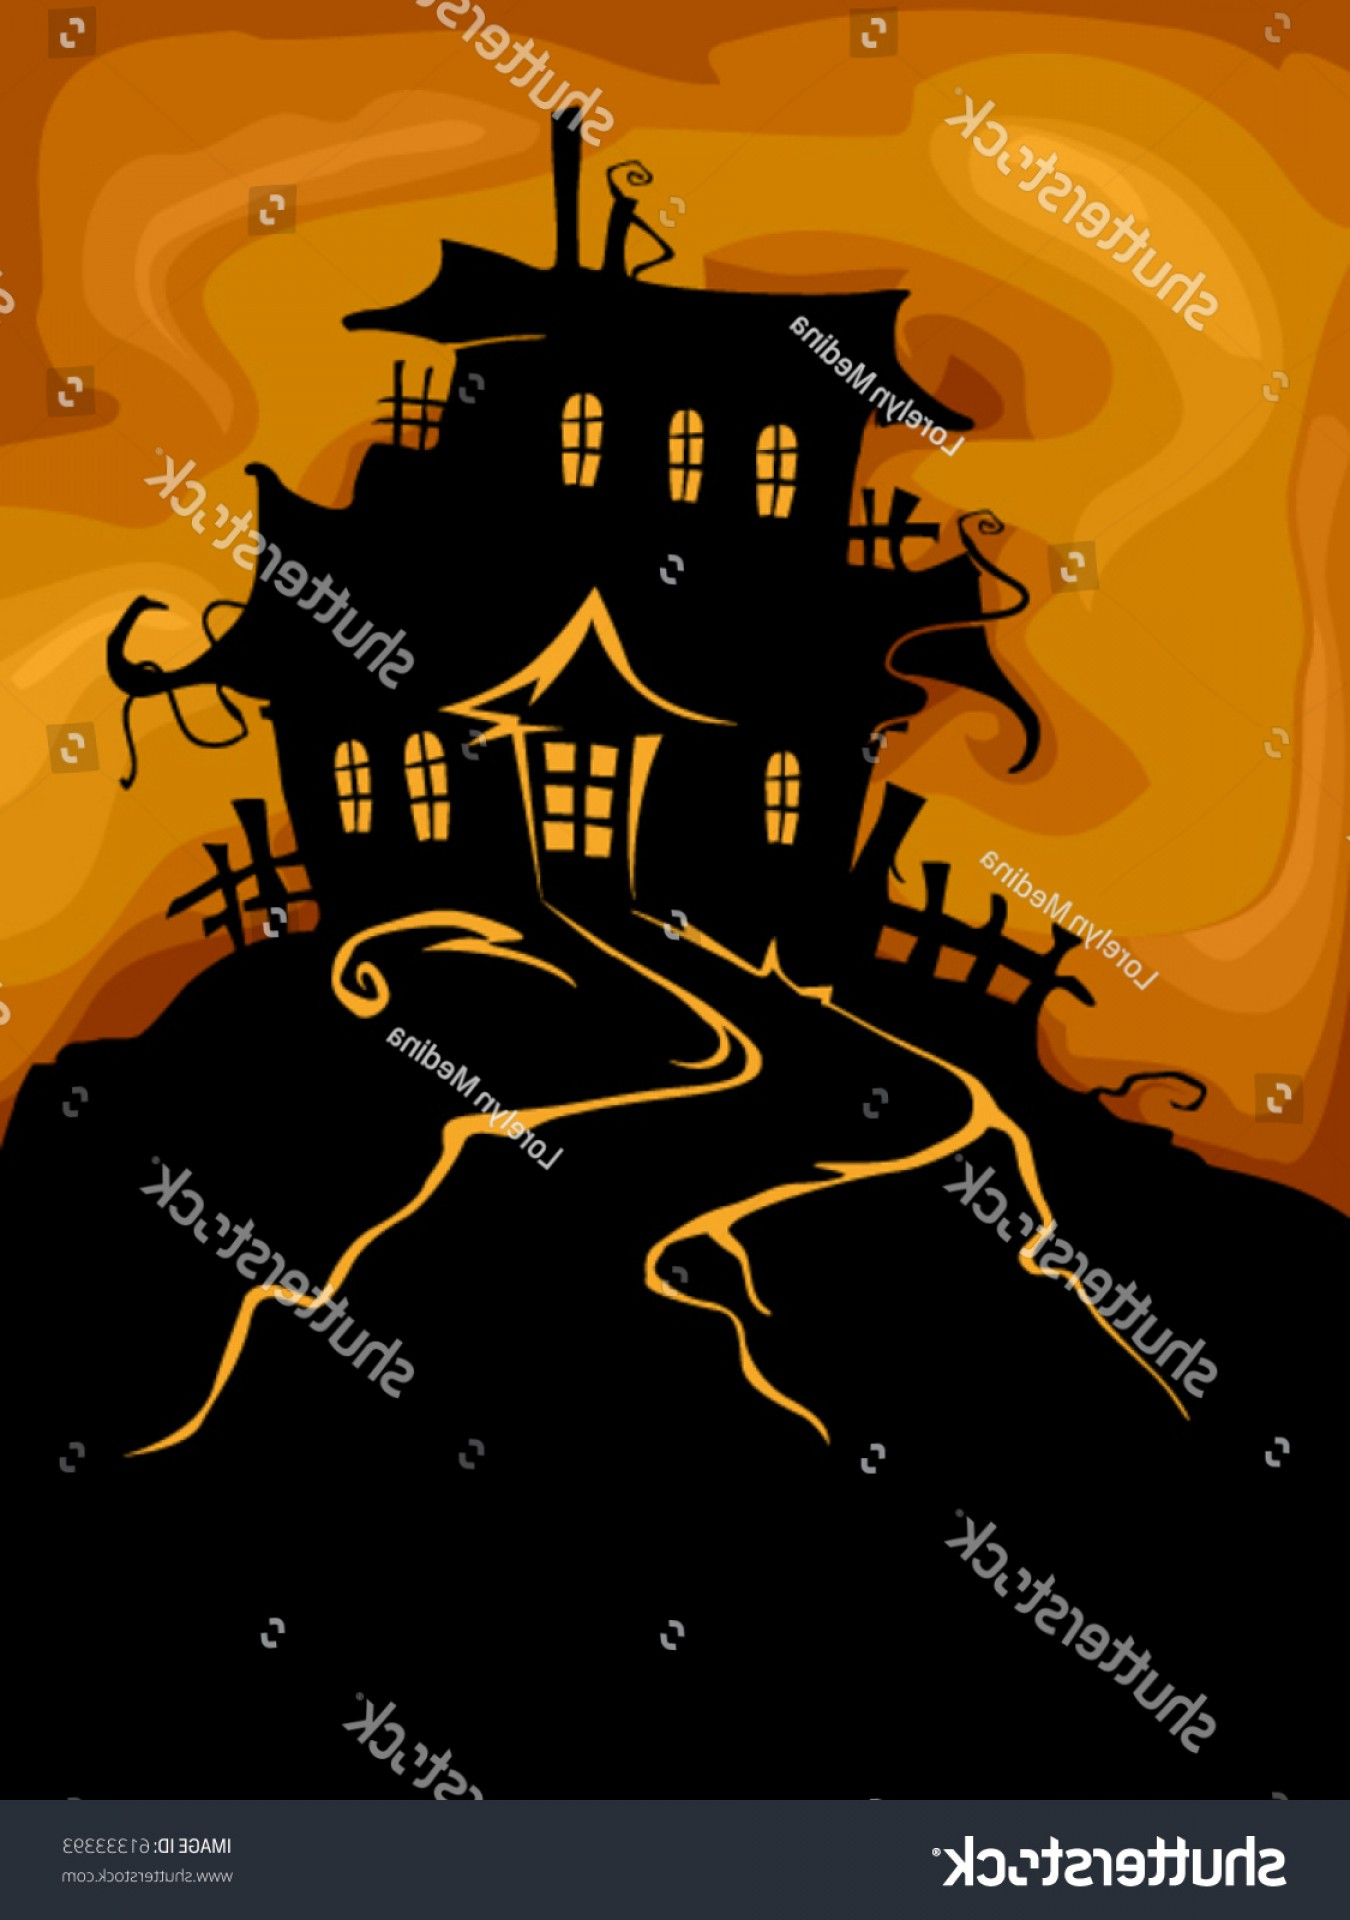 Halloween Design Featuring Silhouette Haunted House | CreateMePink on haunted house floor plans and designs, halloween boo designs, haunted house room designs, red hat designs, halloween cat designs, halloween spider designs, halloween pumpkin designs, halloween moon designs, halloween horror designs, halloween basketball designs, halloween candy designs, halloween ghost designs, autism ribbon designs, books designs, haunted house facade designs, halloween face painting designs, halloween tombstone designs, halloween bat designs, halloween monster designs, halloween jack-o-lantern designs,